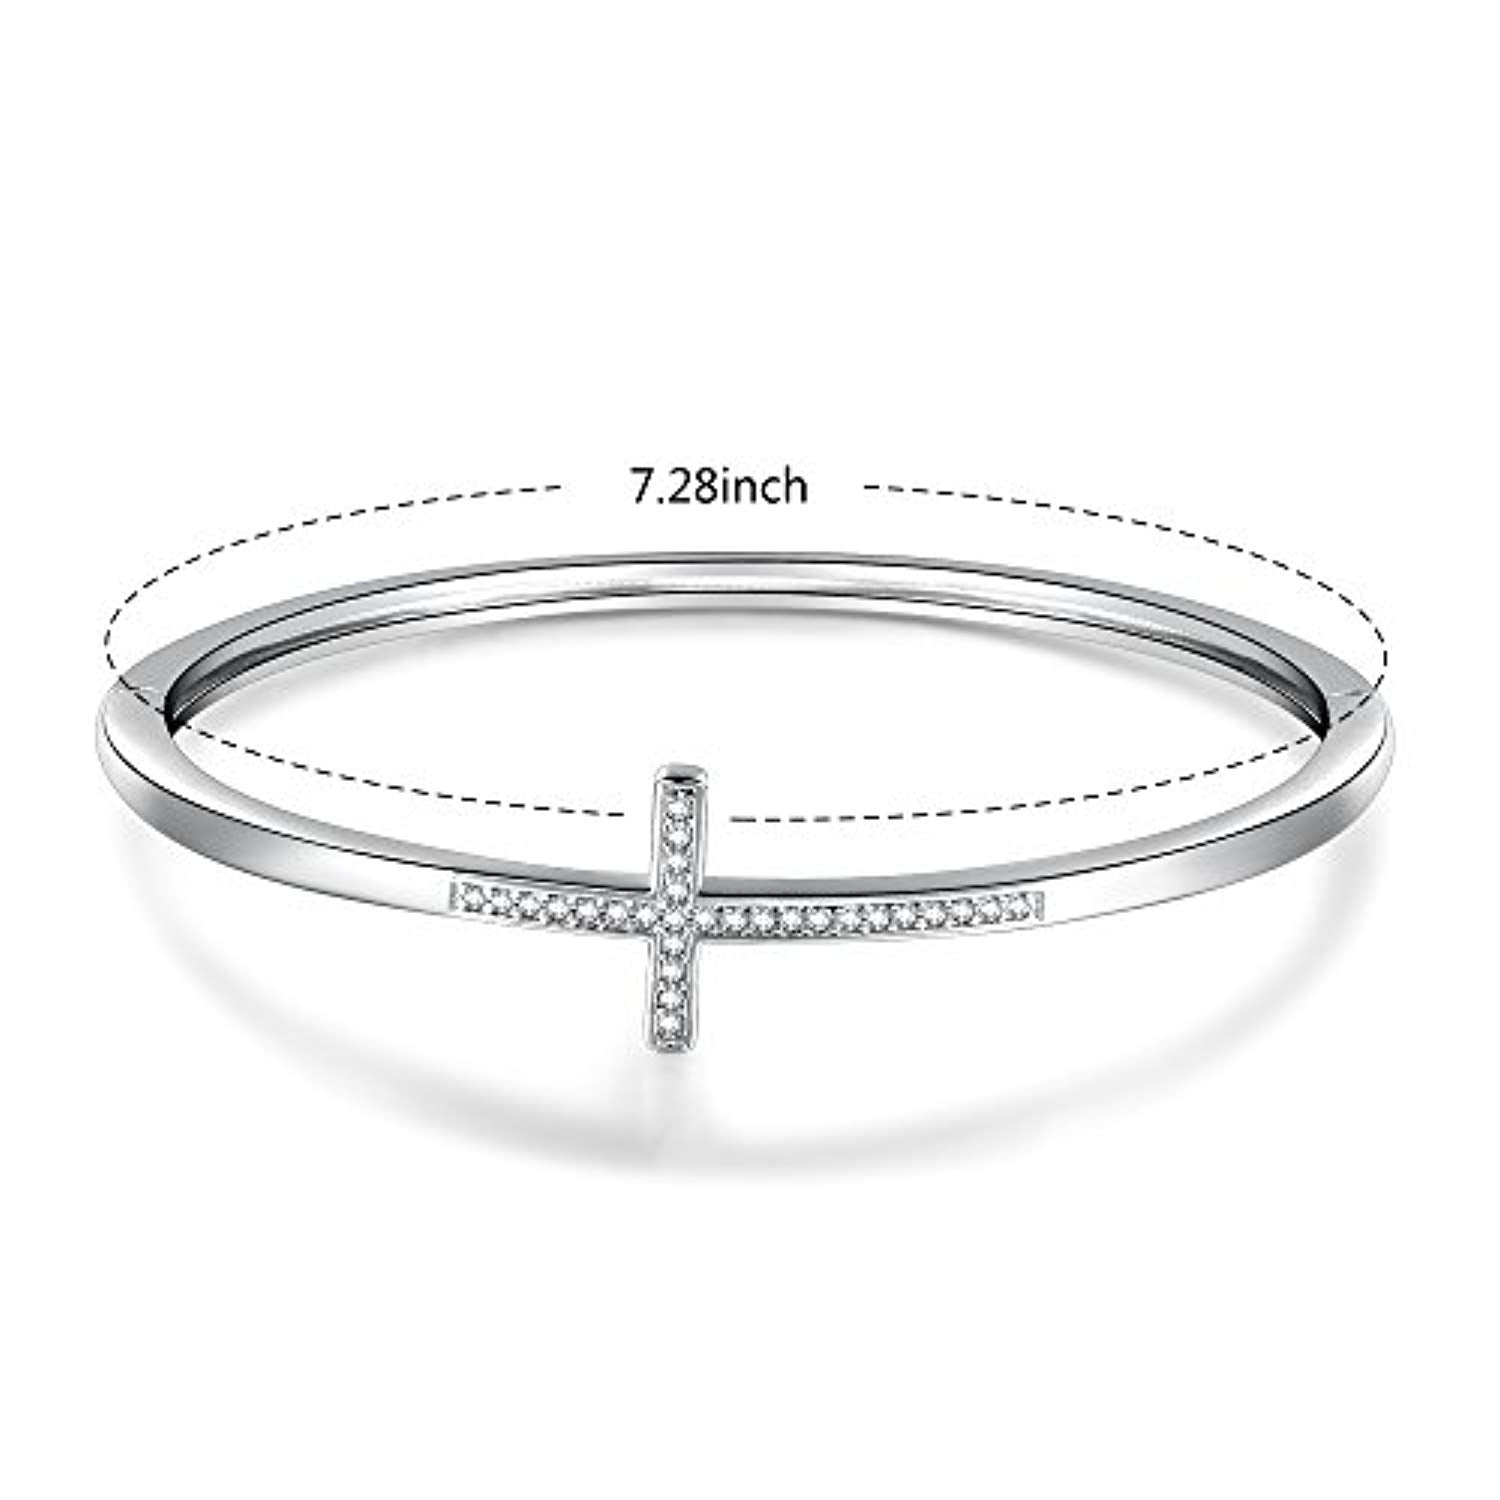 "Crystal Bangle Bracelet for Women ""Encounter of Love"" 7 Inches White Gold Plated Charm Braceletswith Swarovski Crystals, Jewelry Gifts for Women Girls"